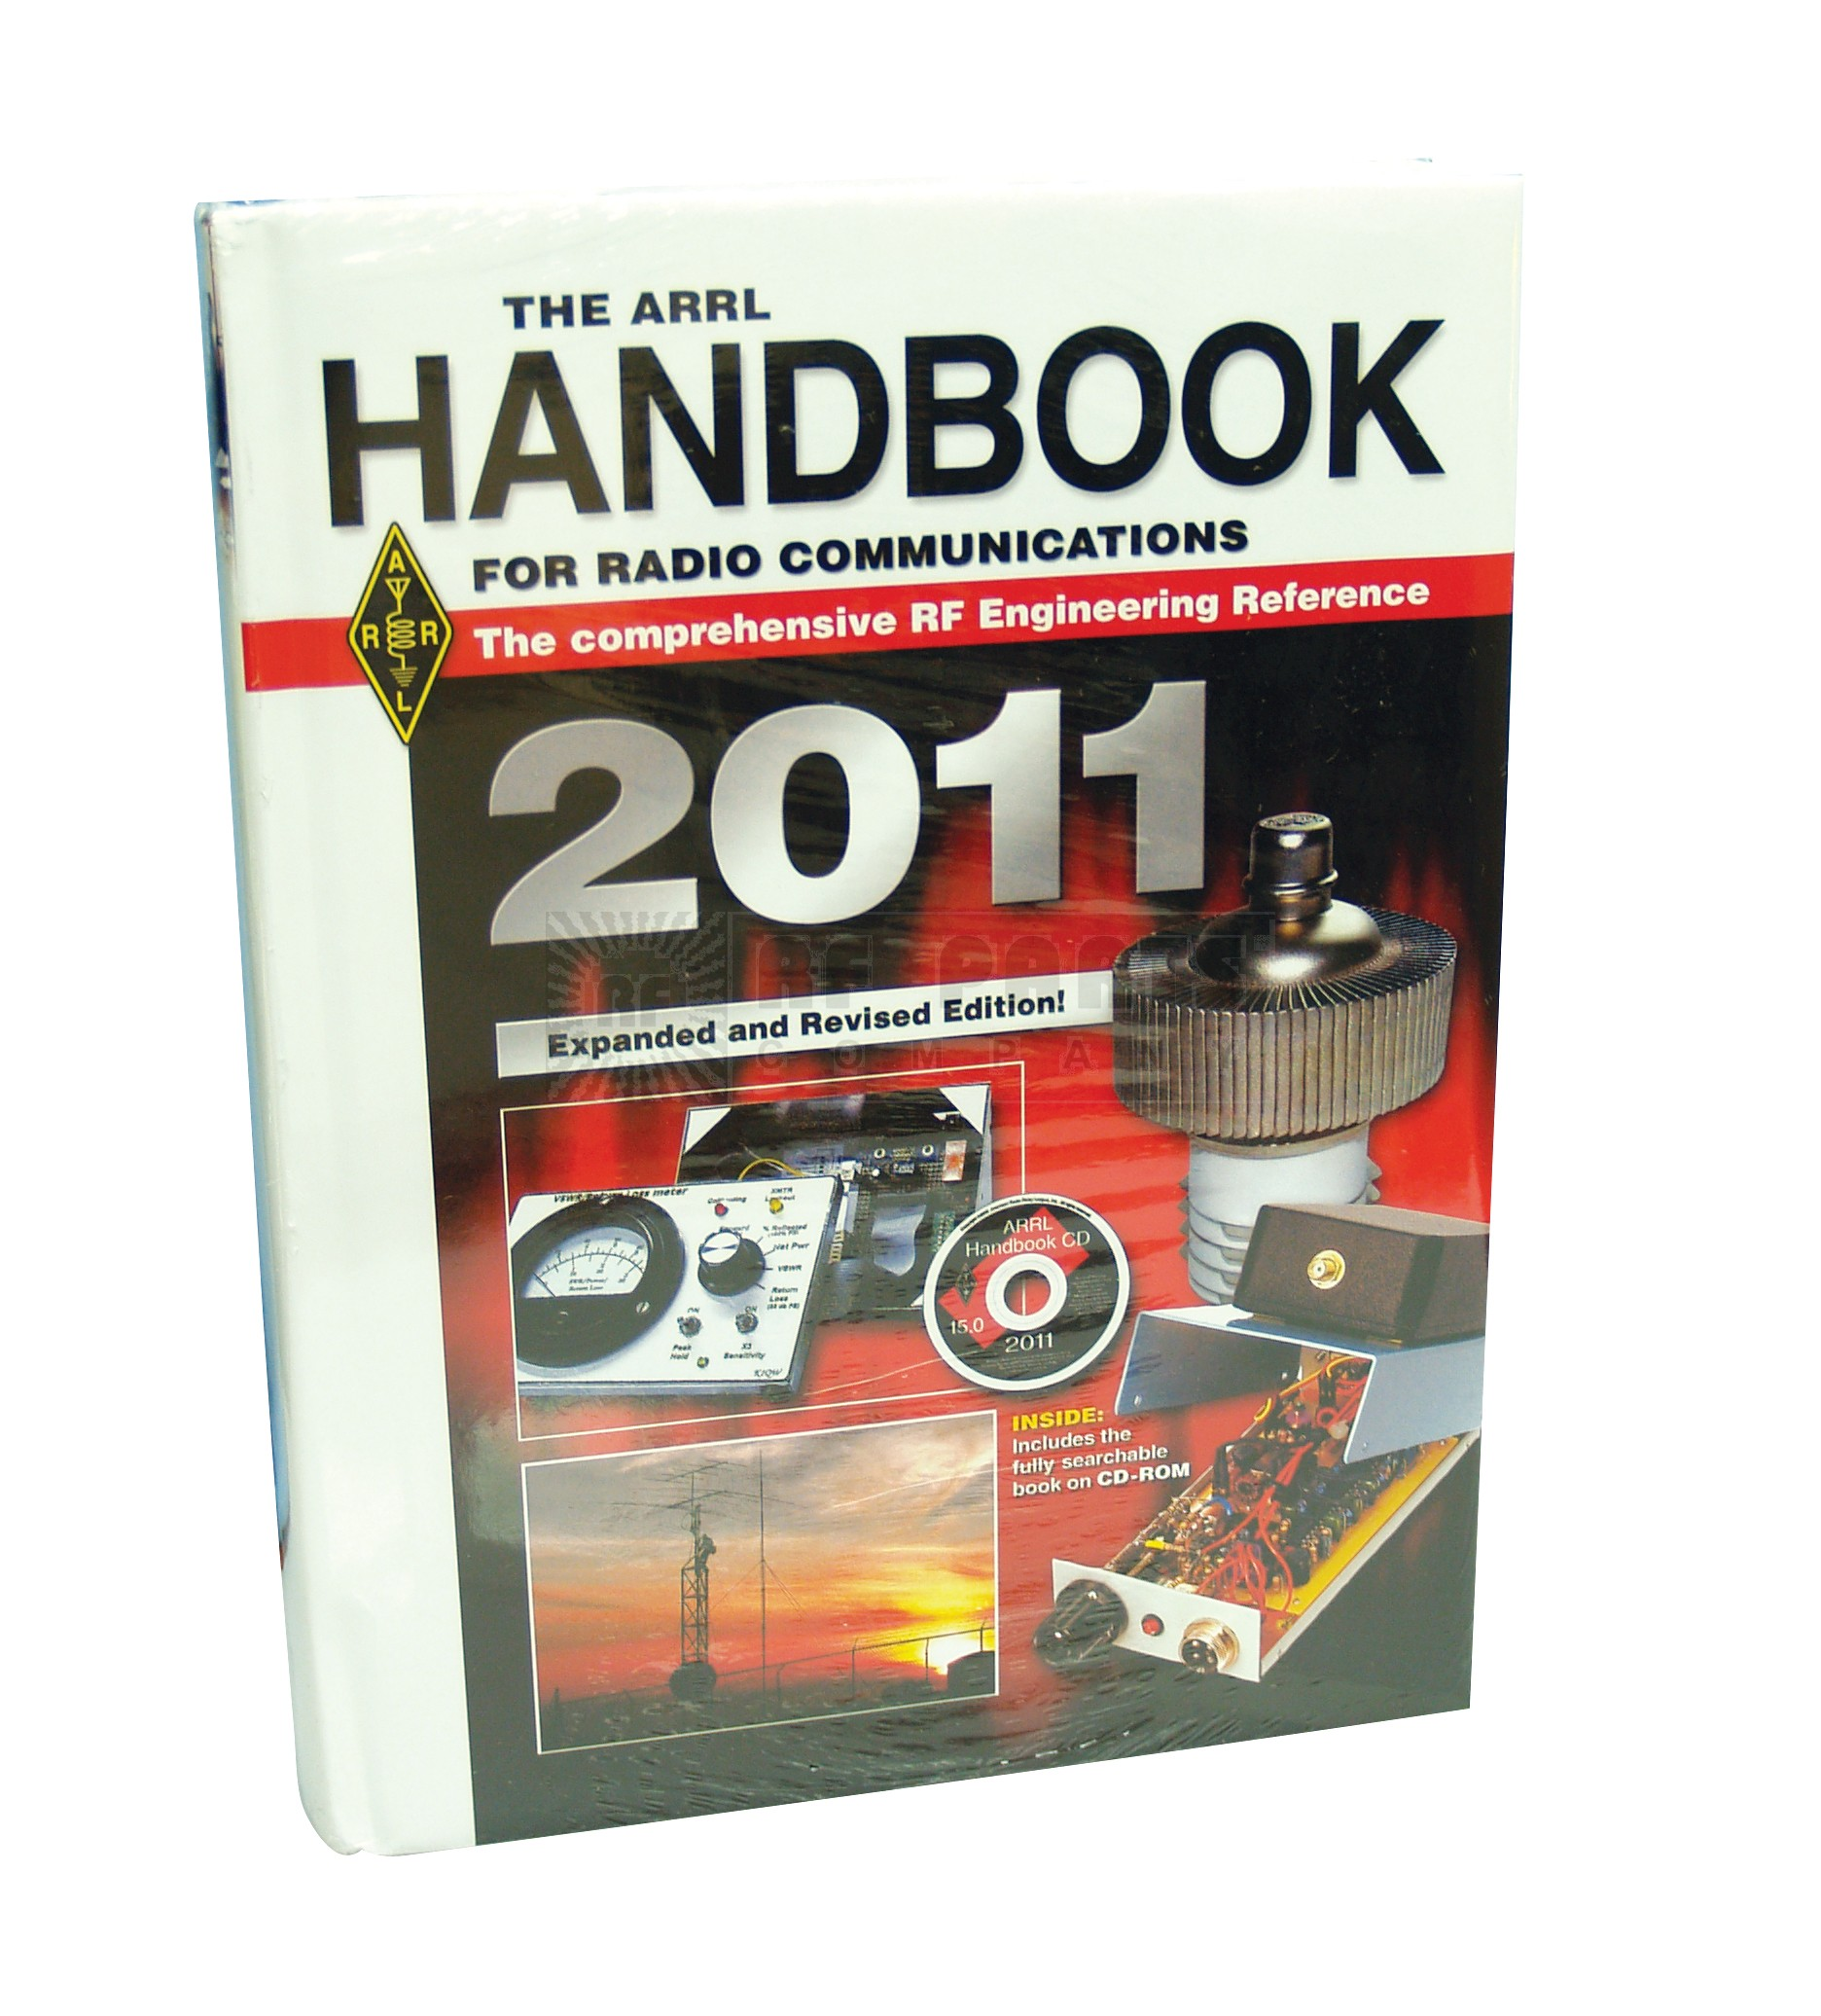 TRAH11 Radio Handbook, 2011 Version, Hardbound Edition